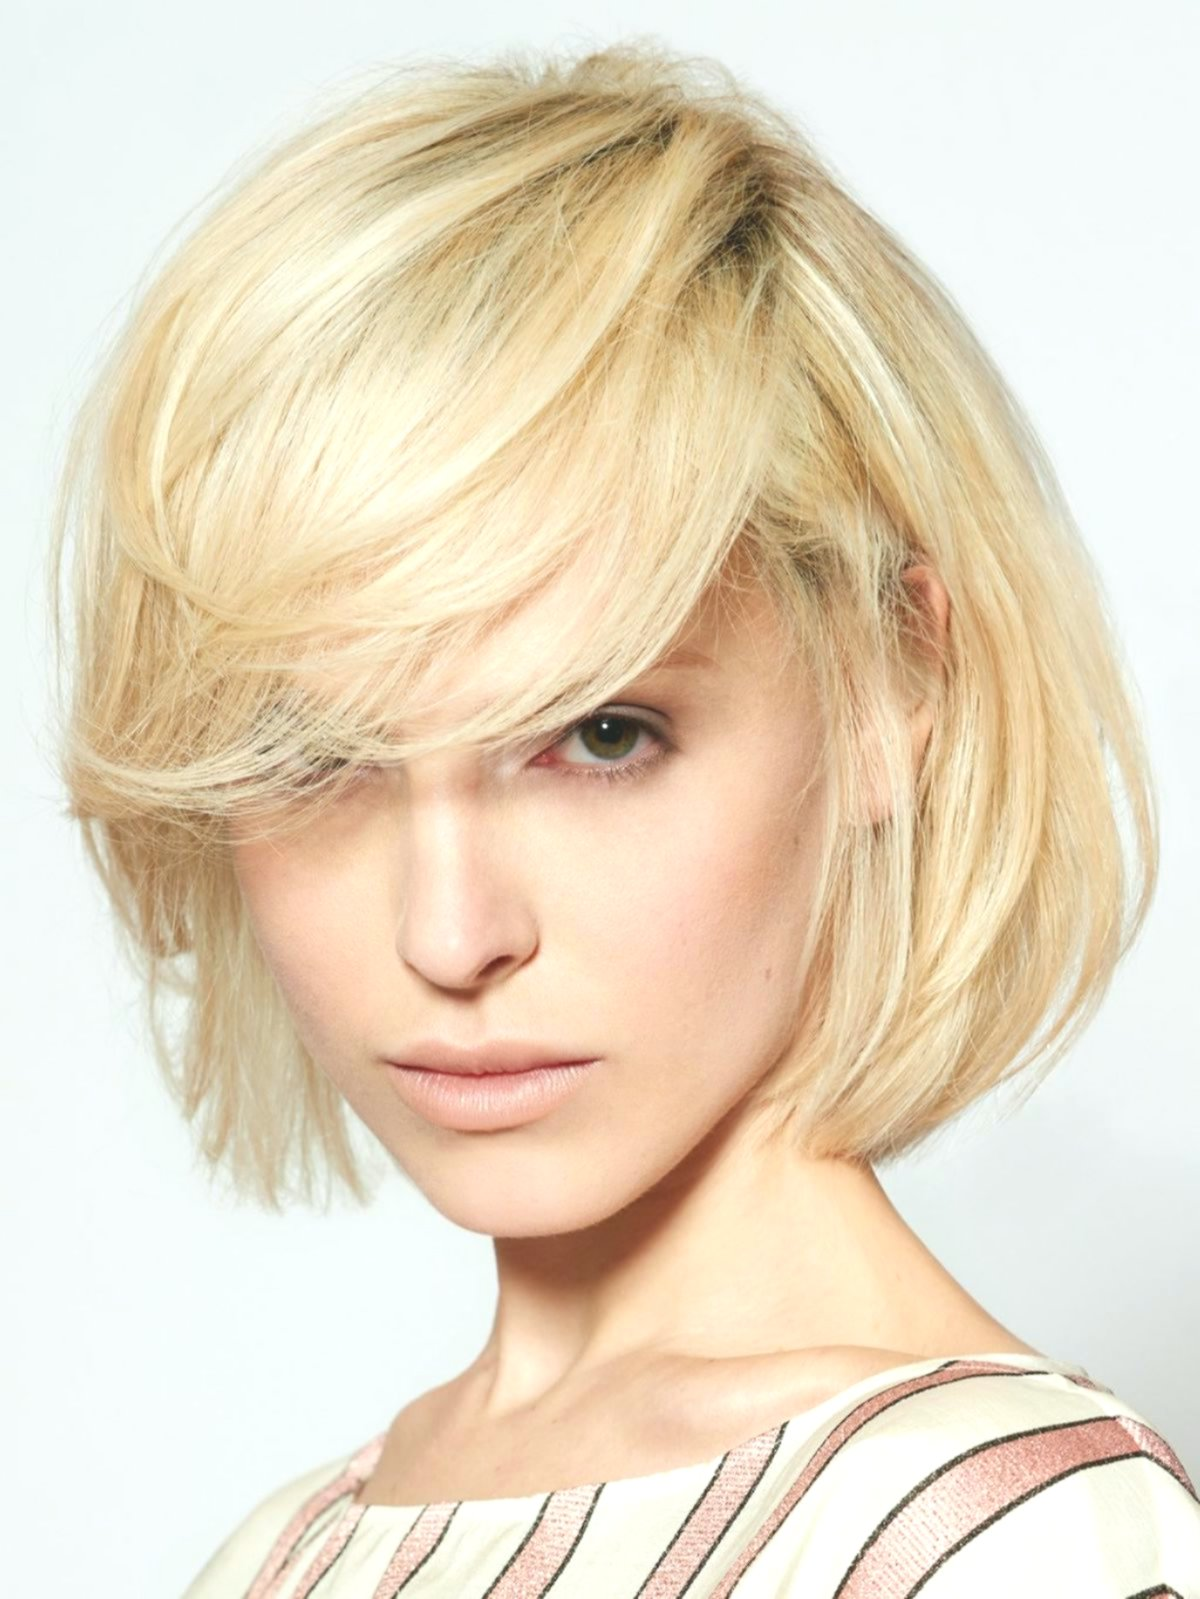 up hairstyles bob mittellang picture-Superb hairstyles Bob Mittellang gallery